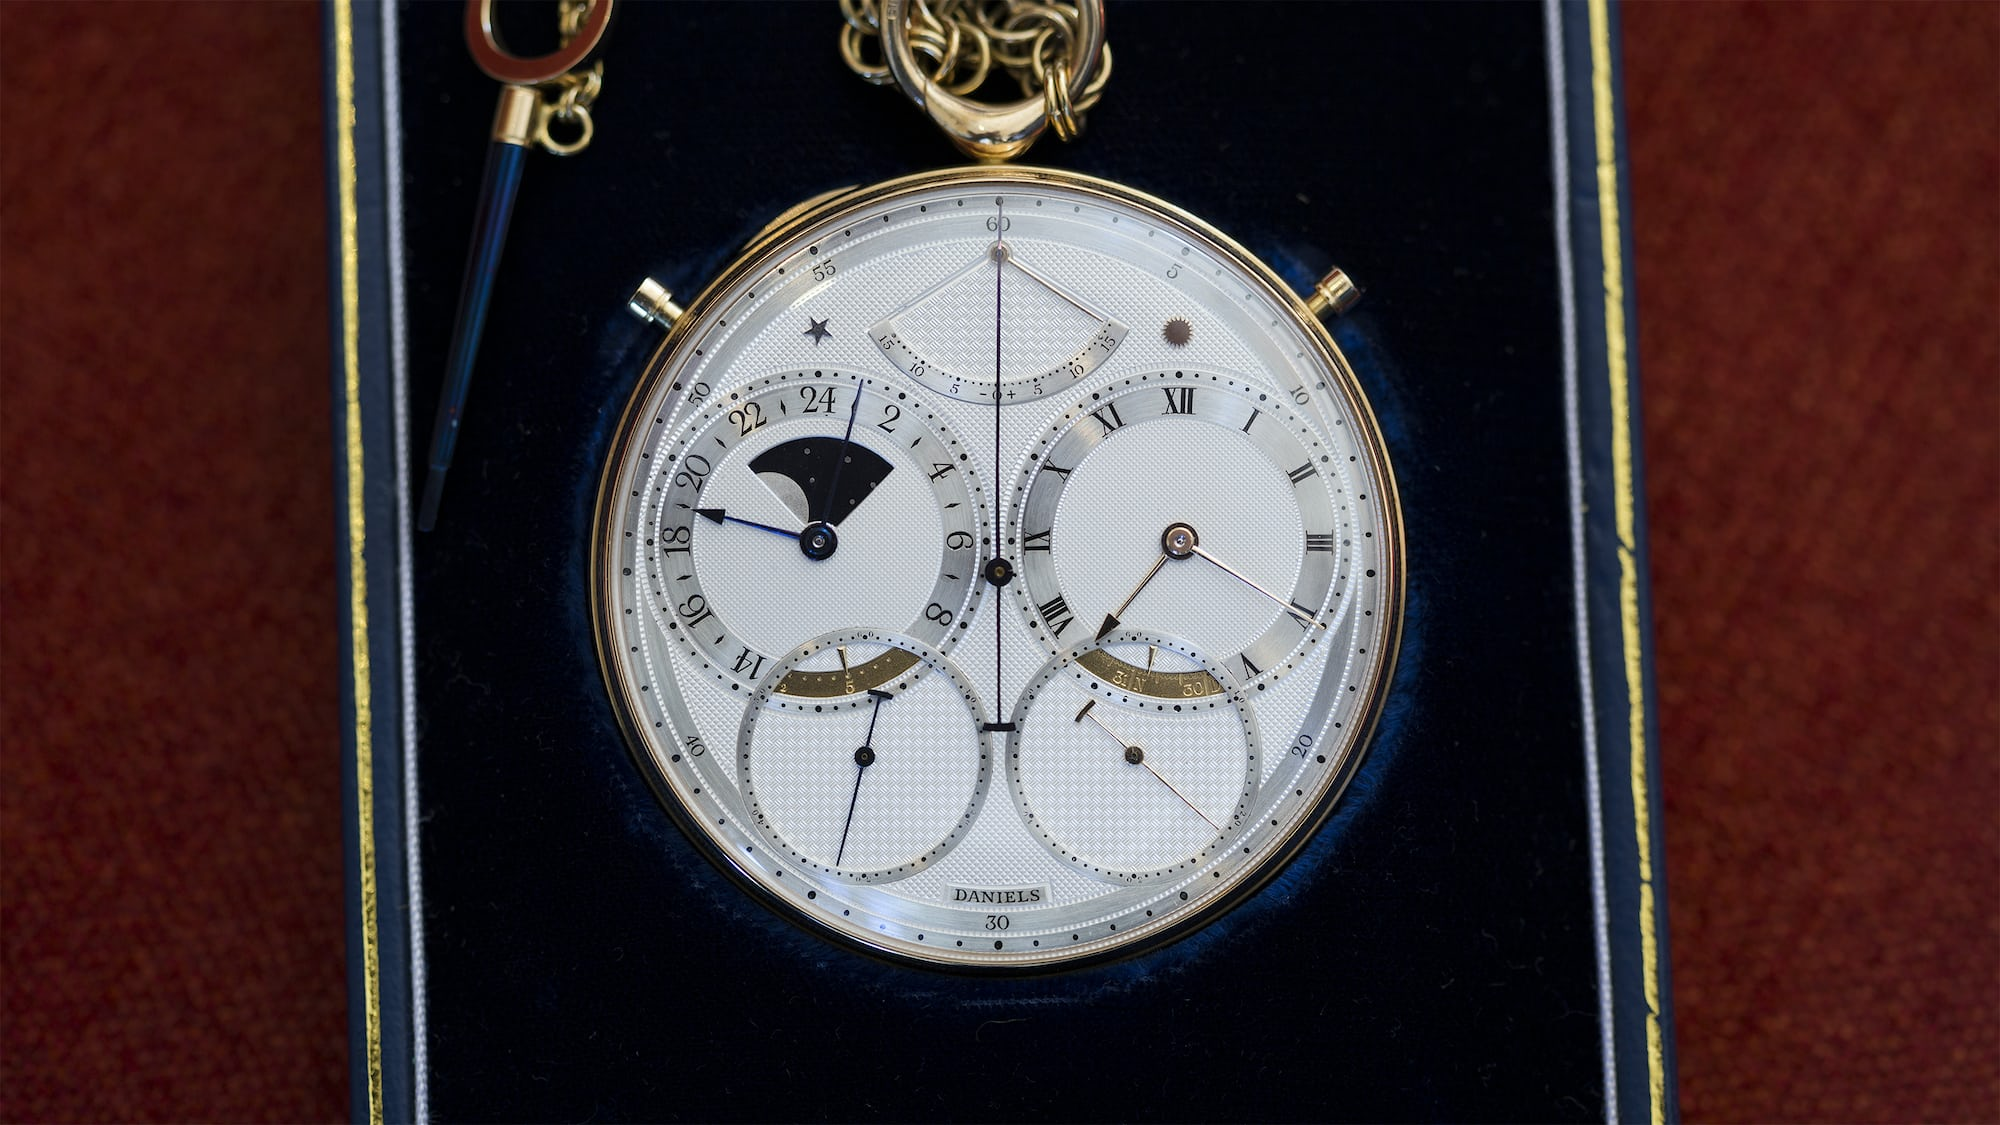 hero.jpg?ixlib=rails 1.1 auction report: sotheby's to offer the daniels 'space traveller' watch, september 19th in london Auction Report: Sotheby's To Offer The Daniels 'Space Traveller' Watch, September 19th In London  hero